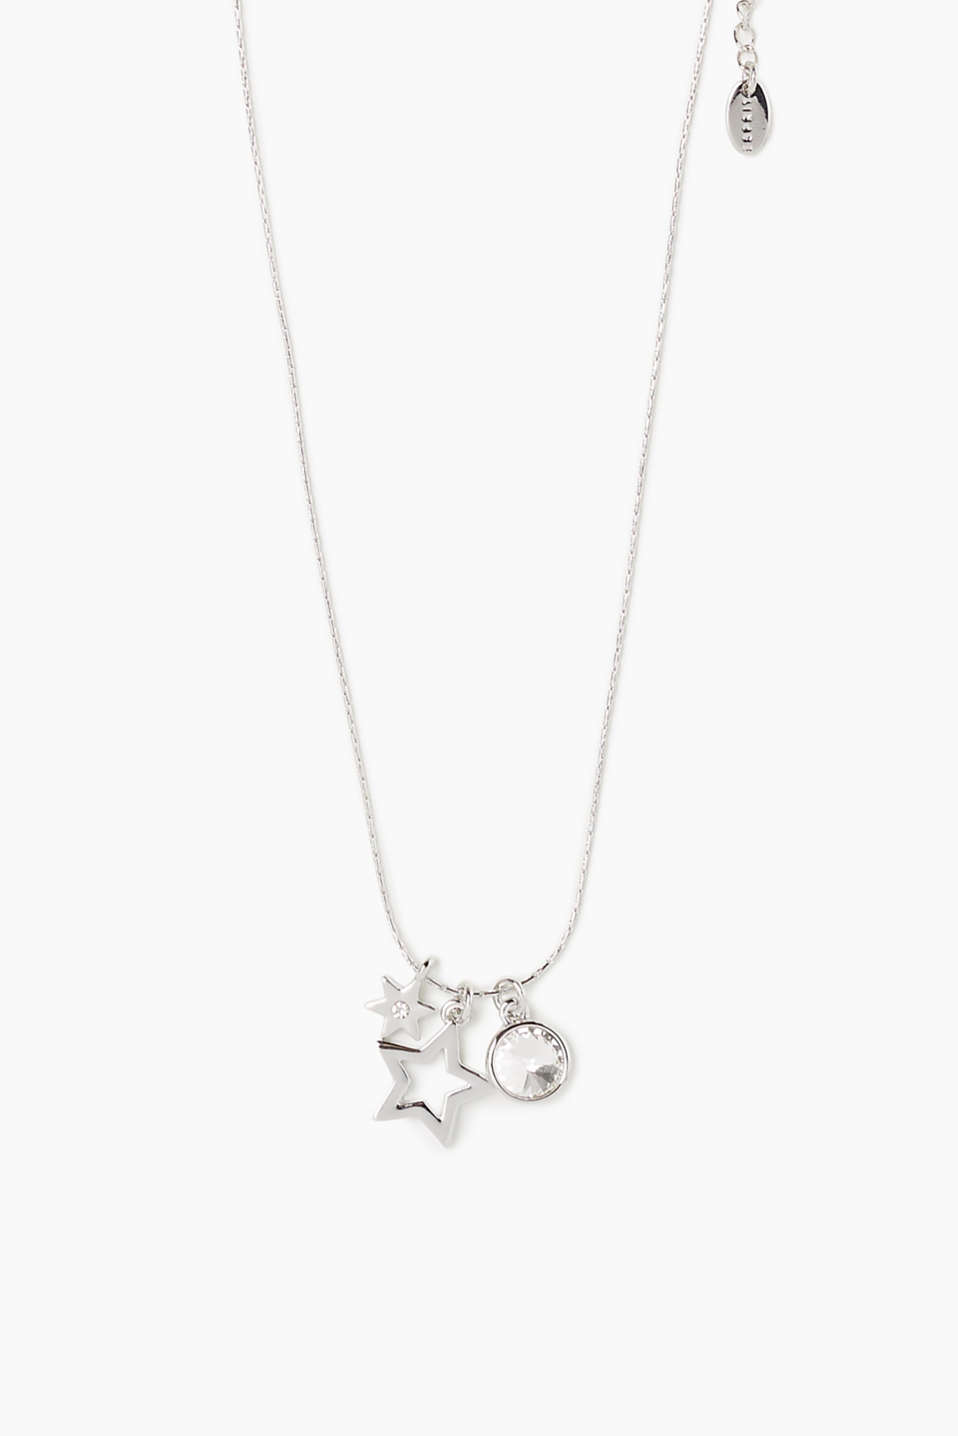 A set facet-cut stone and star charms